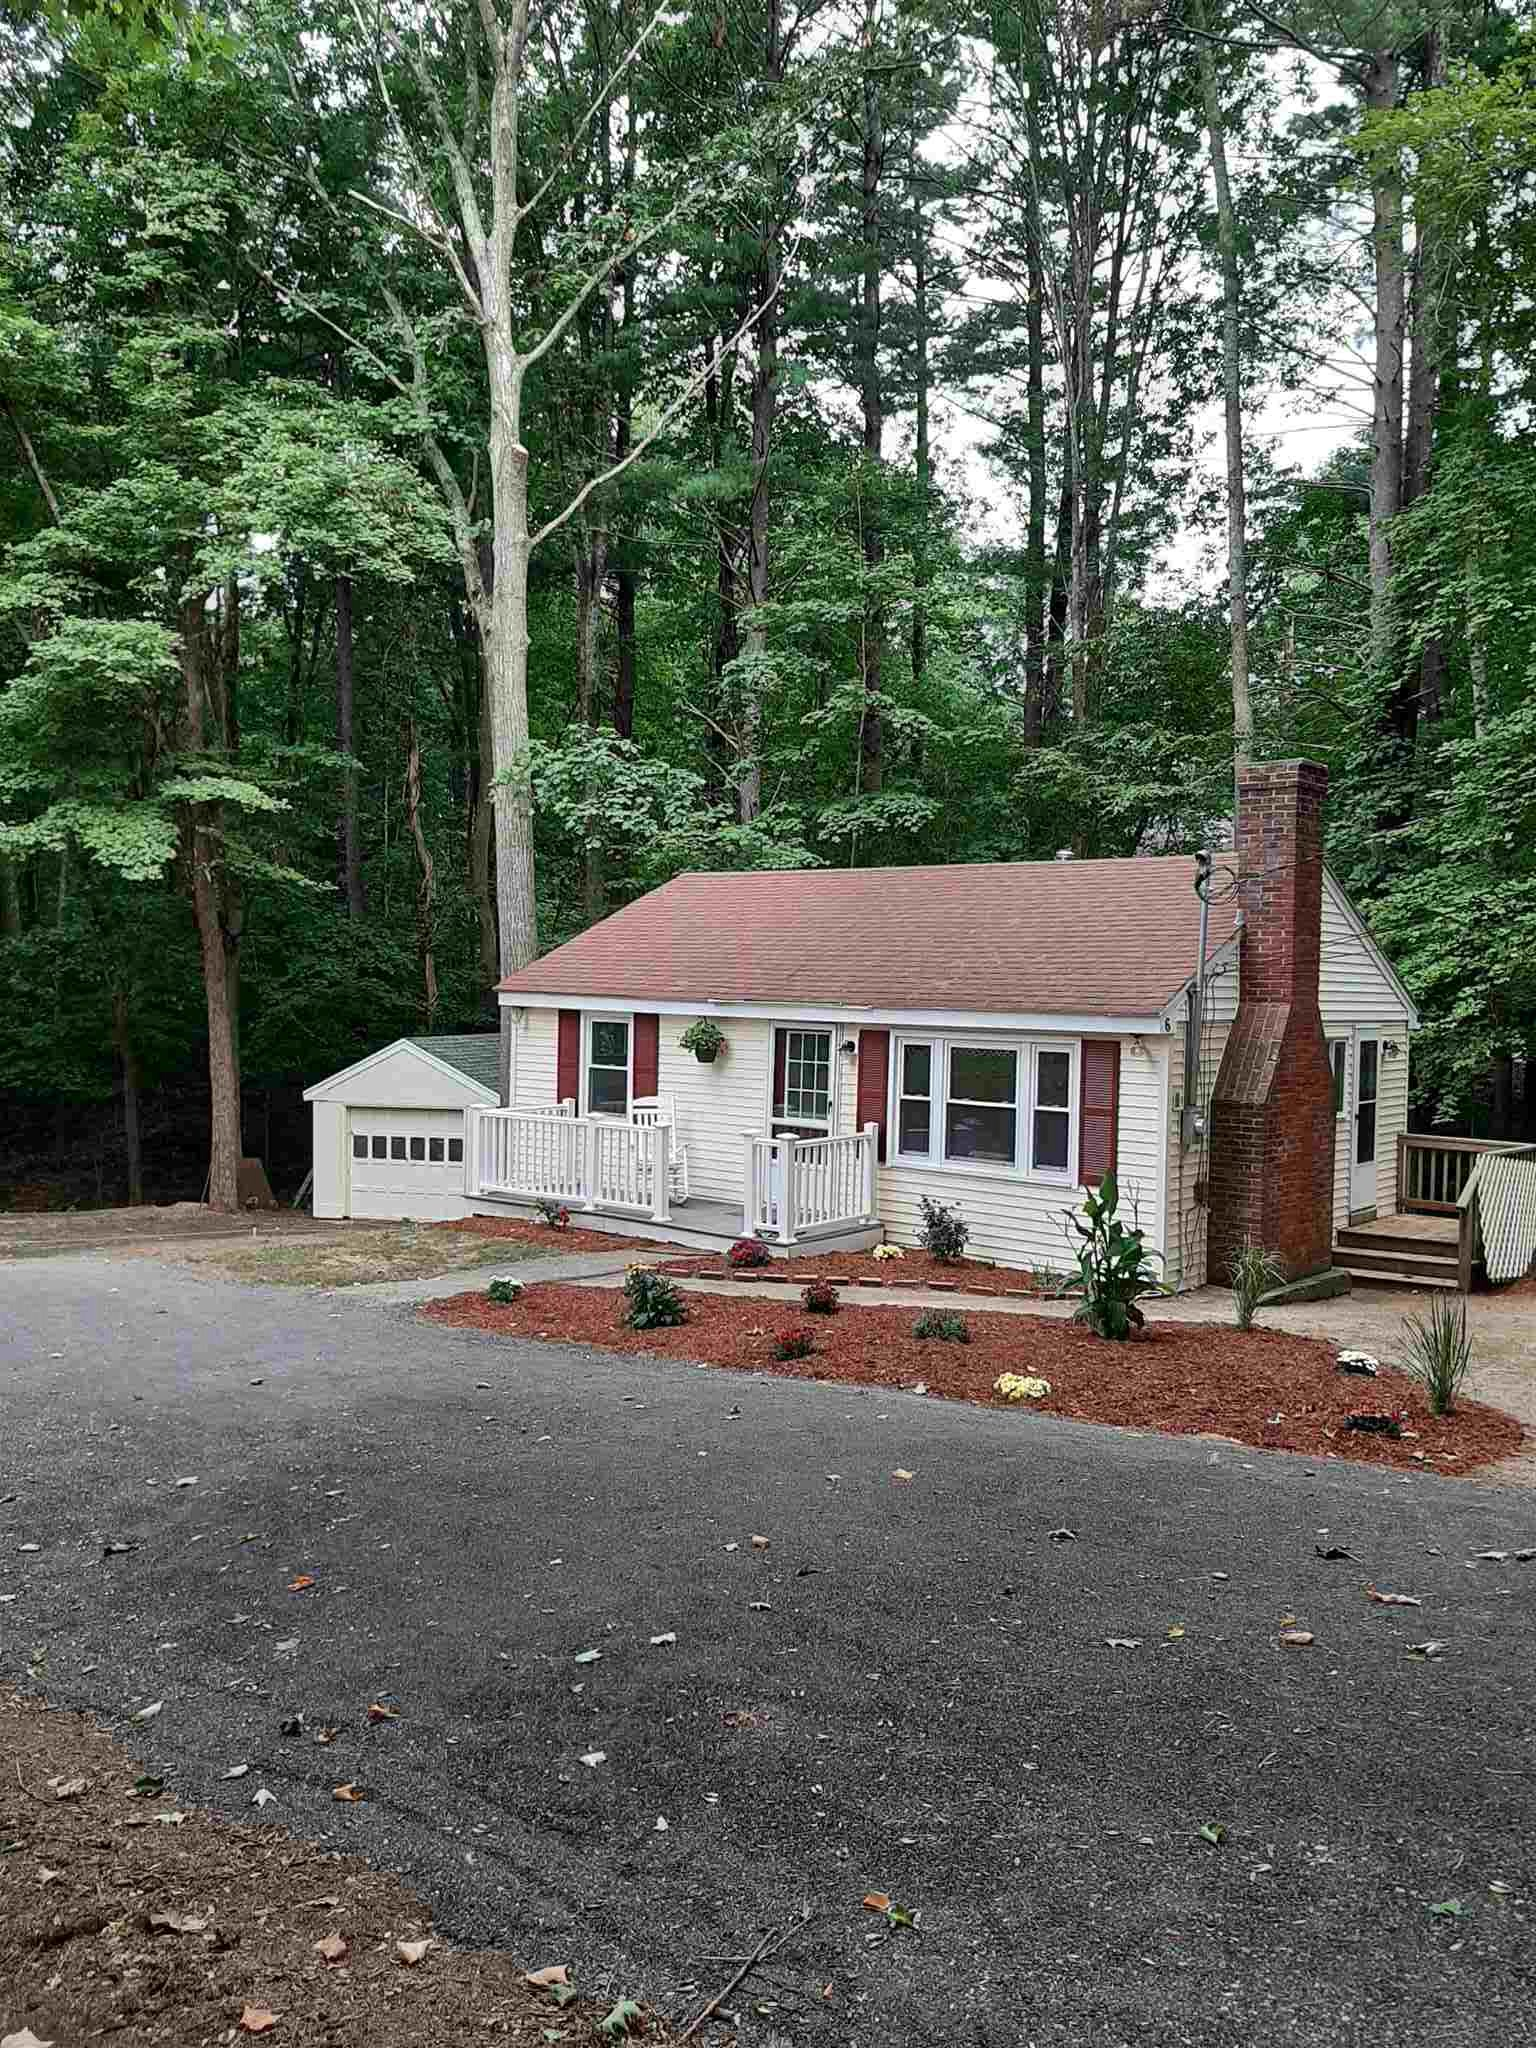 MLS 4819832: 6 GARDNER Road, Windham NH